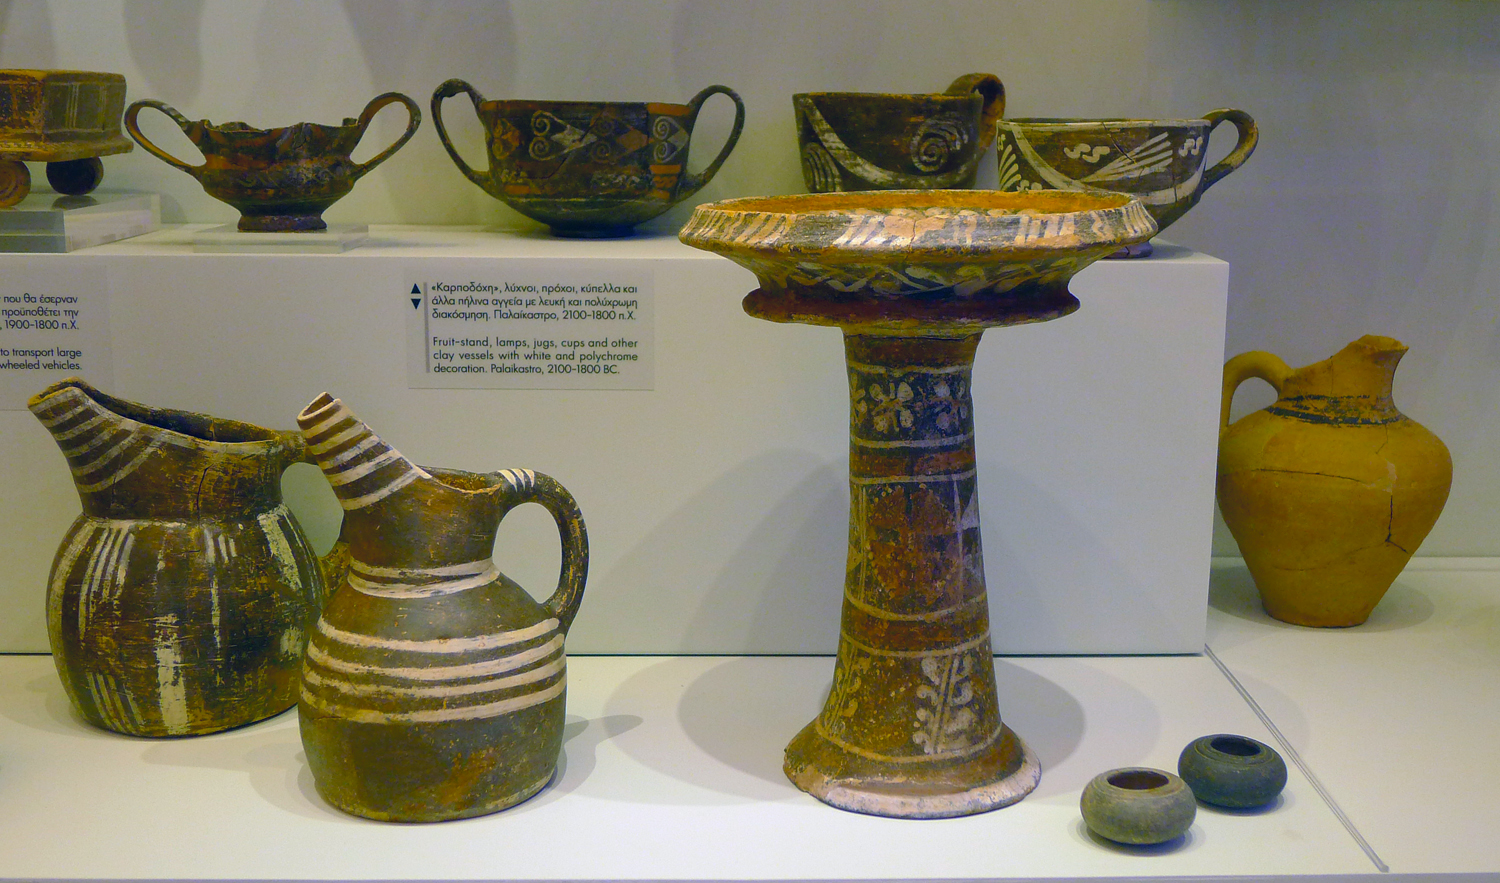 The forms and decoration on the pottery are exquisite